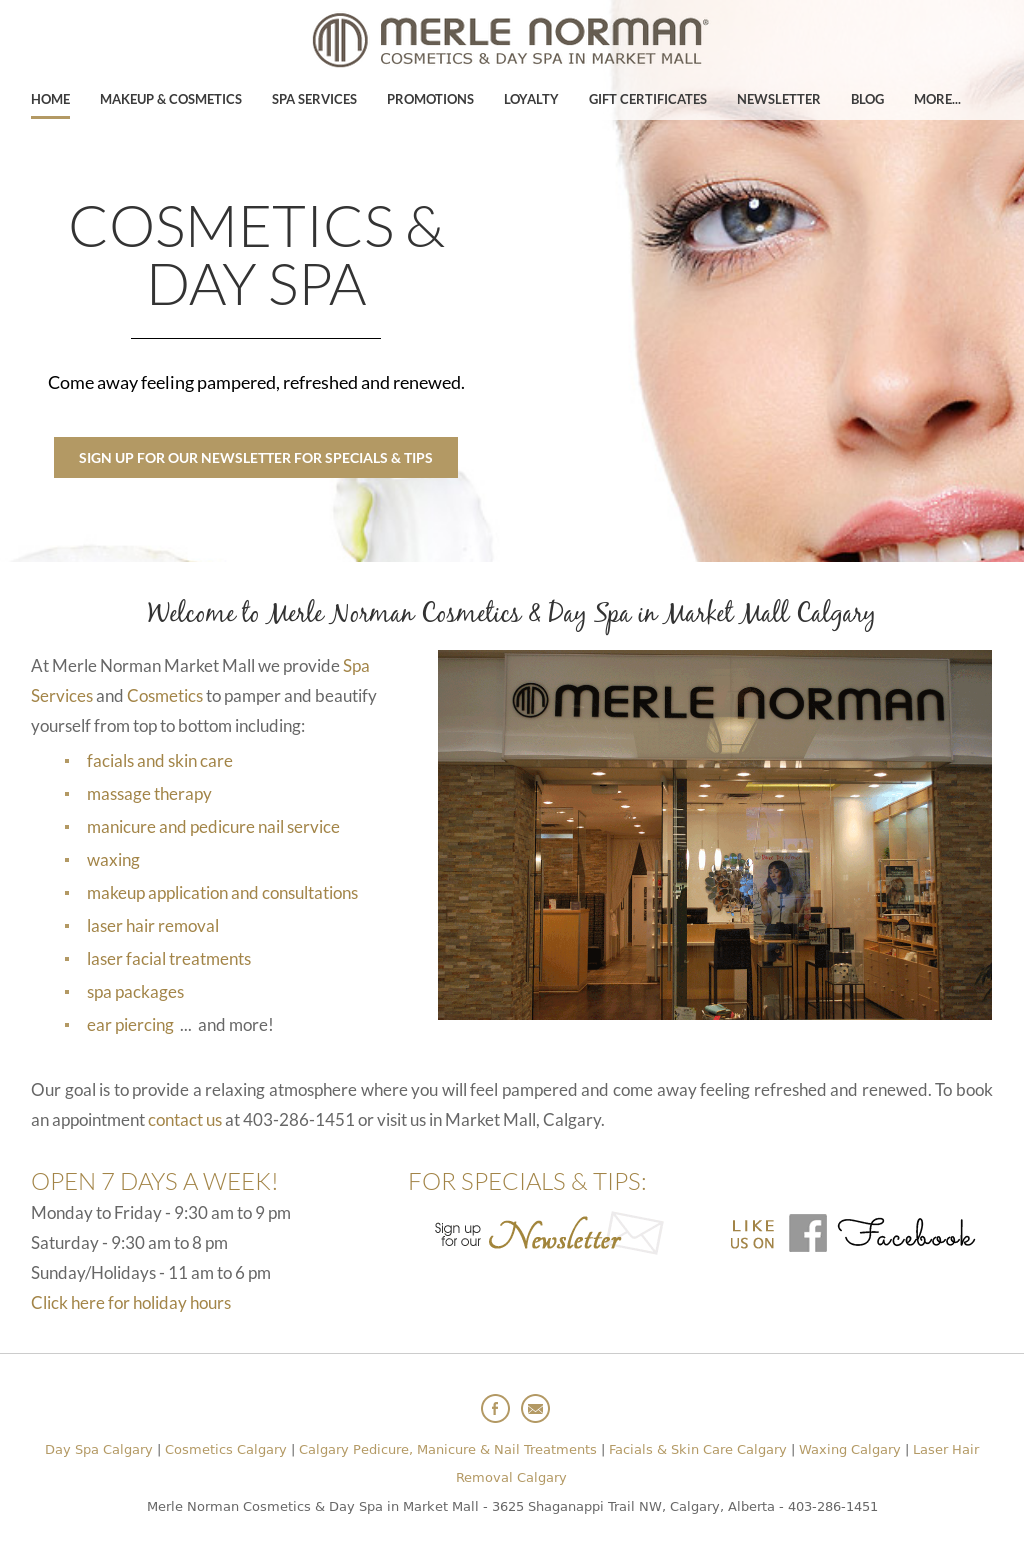 c546bb78c30 Merle Norman Cosmetics & Spa Market Mall Competitors, Revenue and Employees  - Owler Company Profile